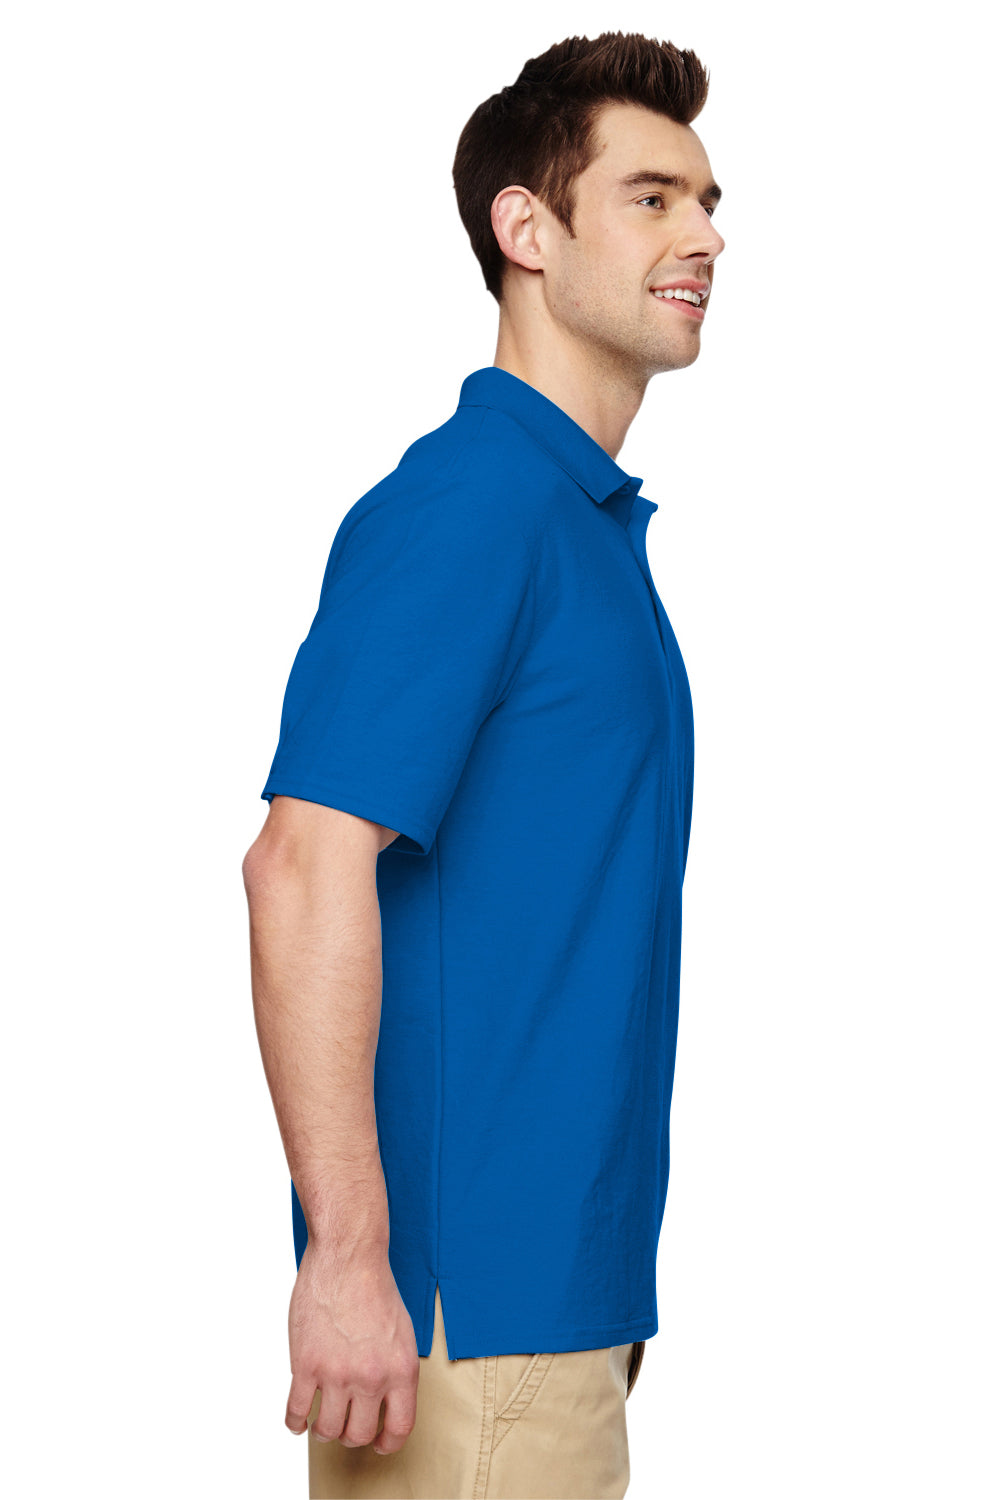 Gildan G728 Mens DryBlend Moisture Wicking Short Sleeve Polo Shirt Royal Blue Side